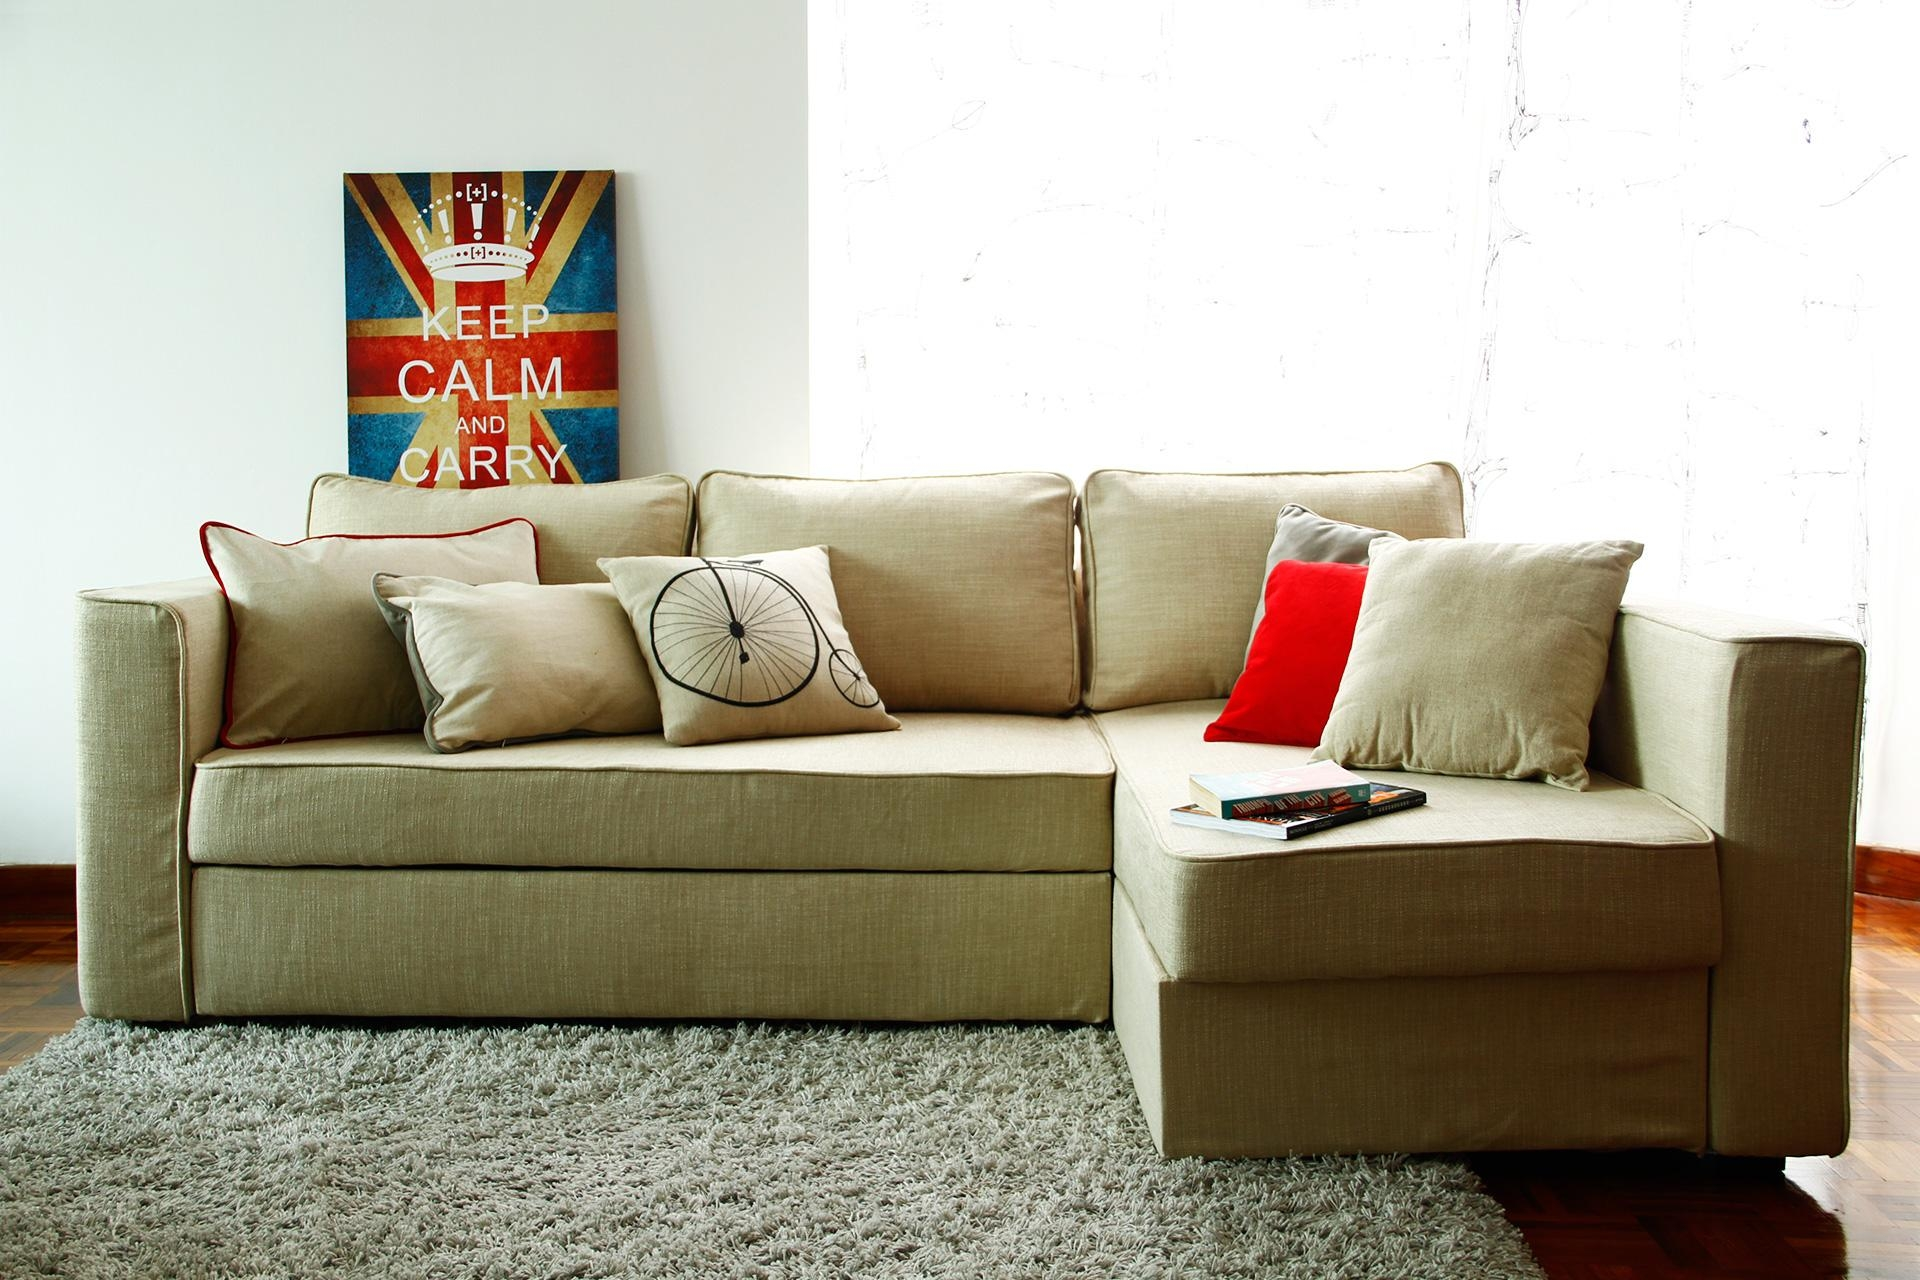 Can Your Sofa Be Slipcovered And Brought Back To Life? Pertaining To Camelback Sofa Slipcovers (View 16 of 19)